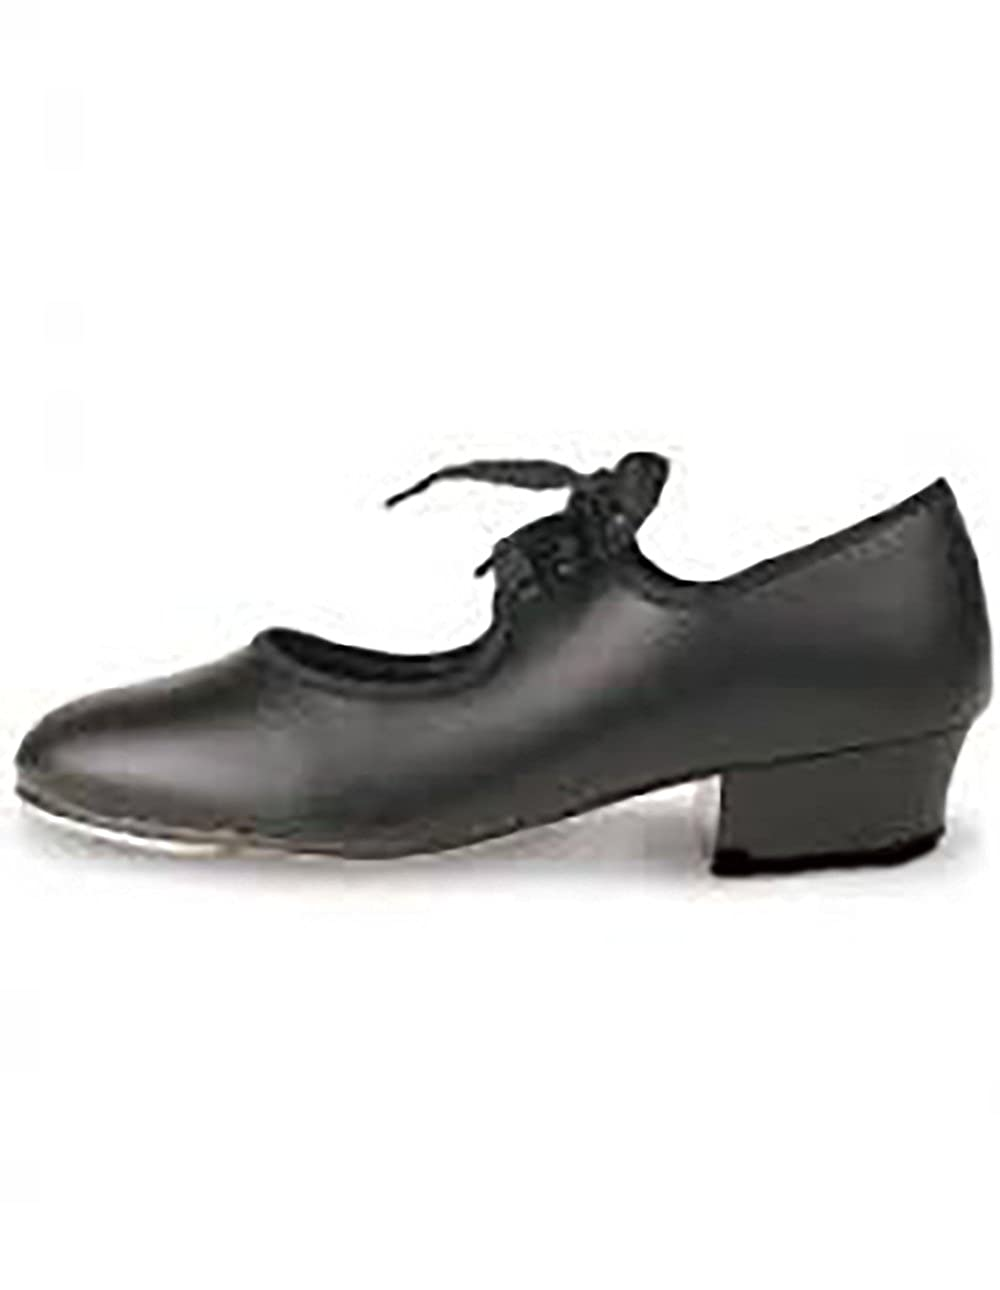 Girls roch Valley tap shoes black sizes child 5 to LARGE 5